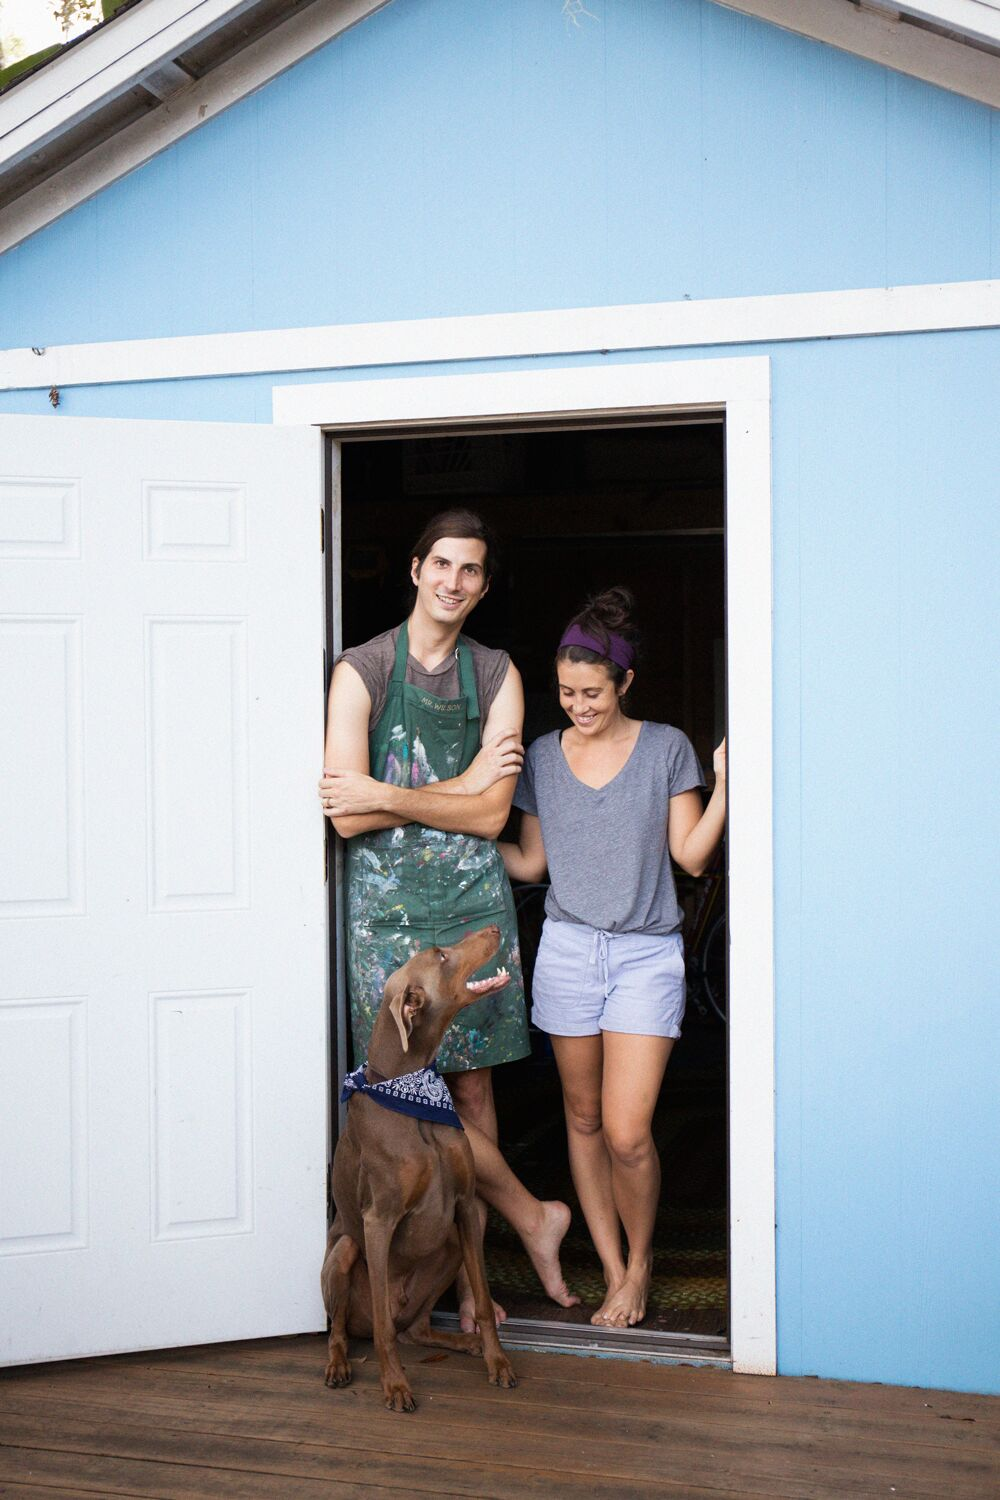 Me and Andrew (+ Escher, our fawn Doberman), in our backyard STA FLA studio. Photos by Kelsey Heinze.